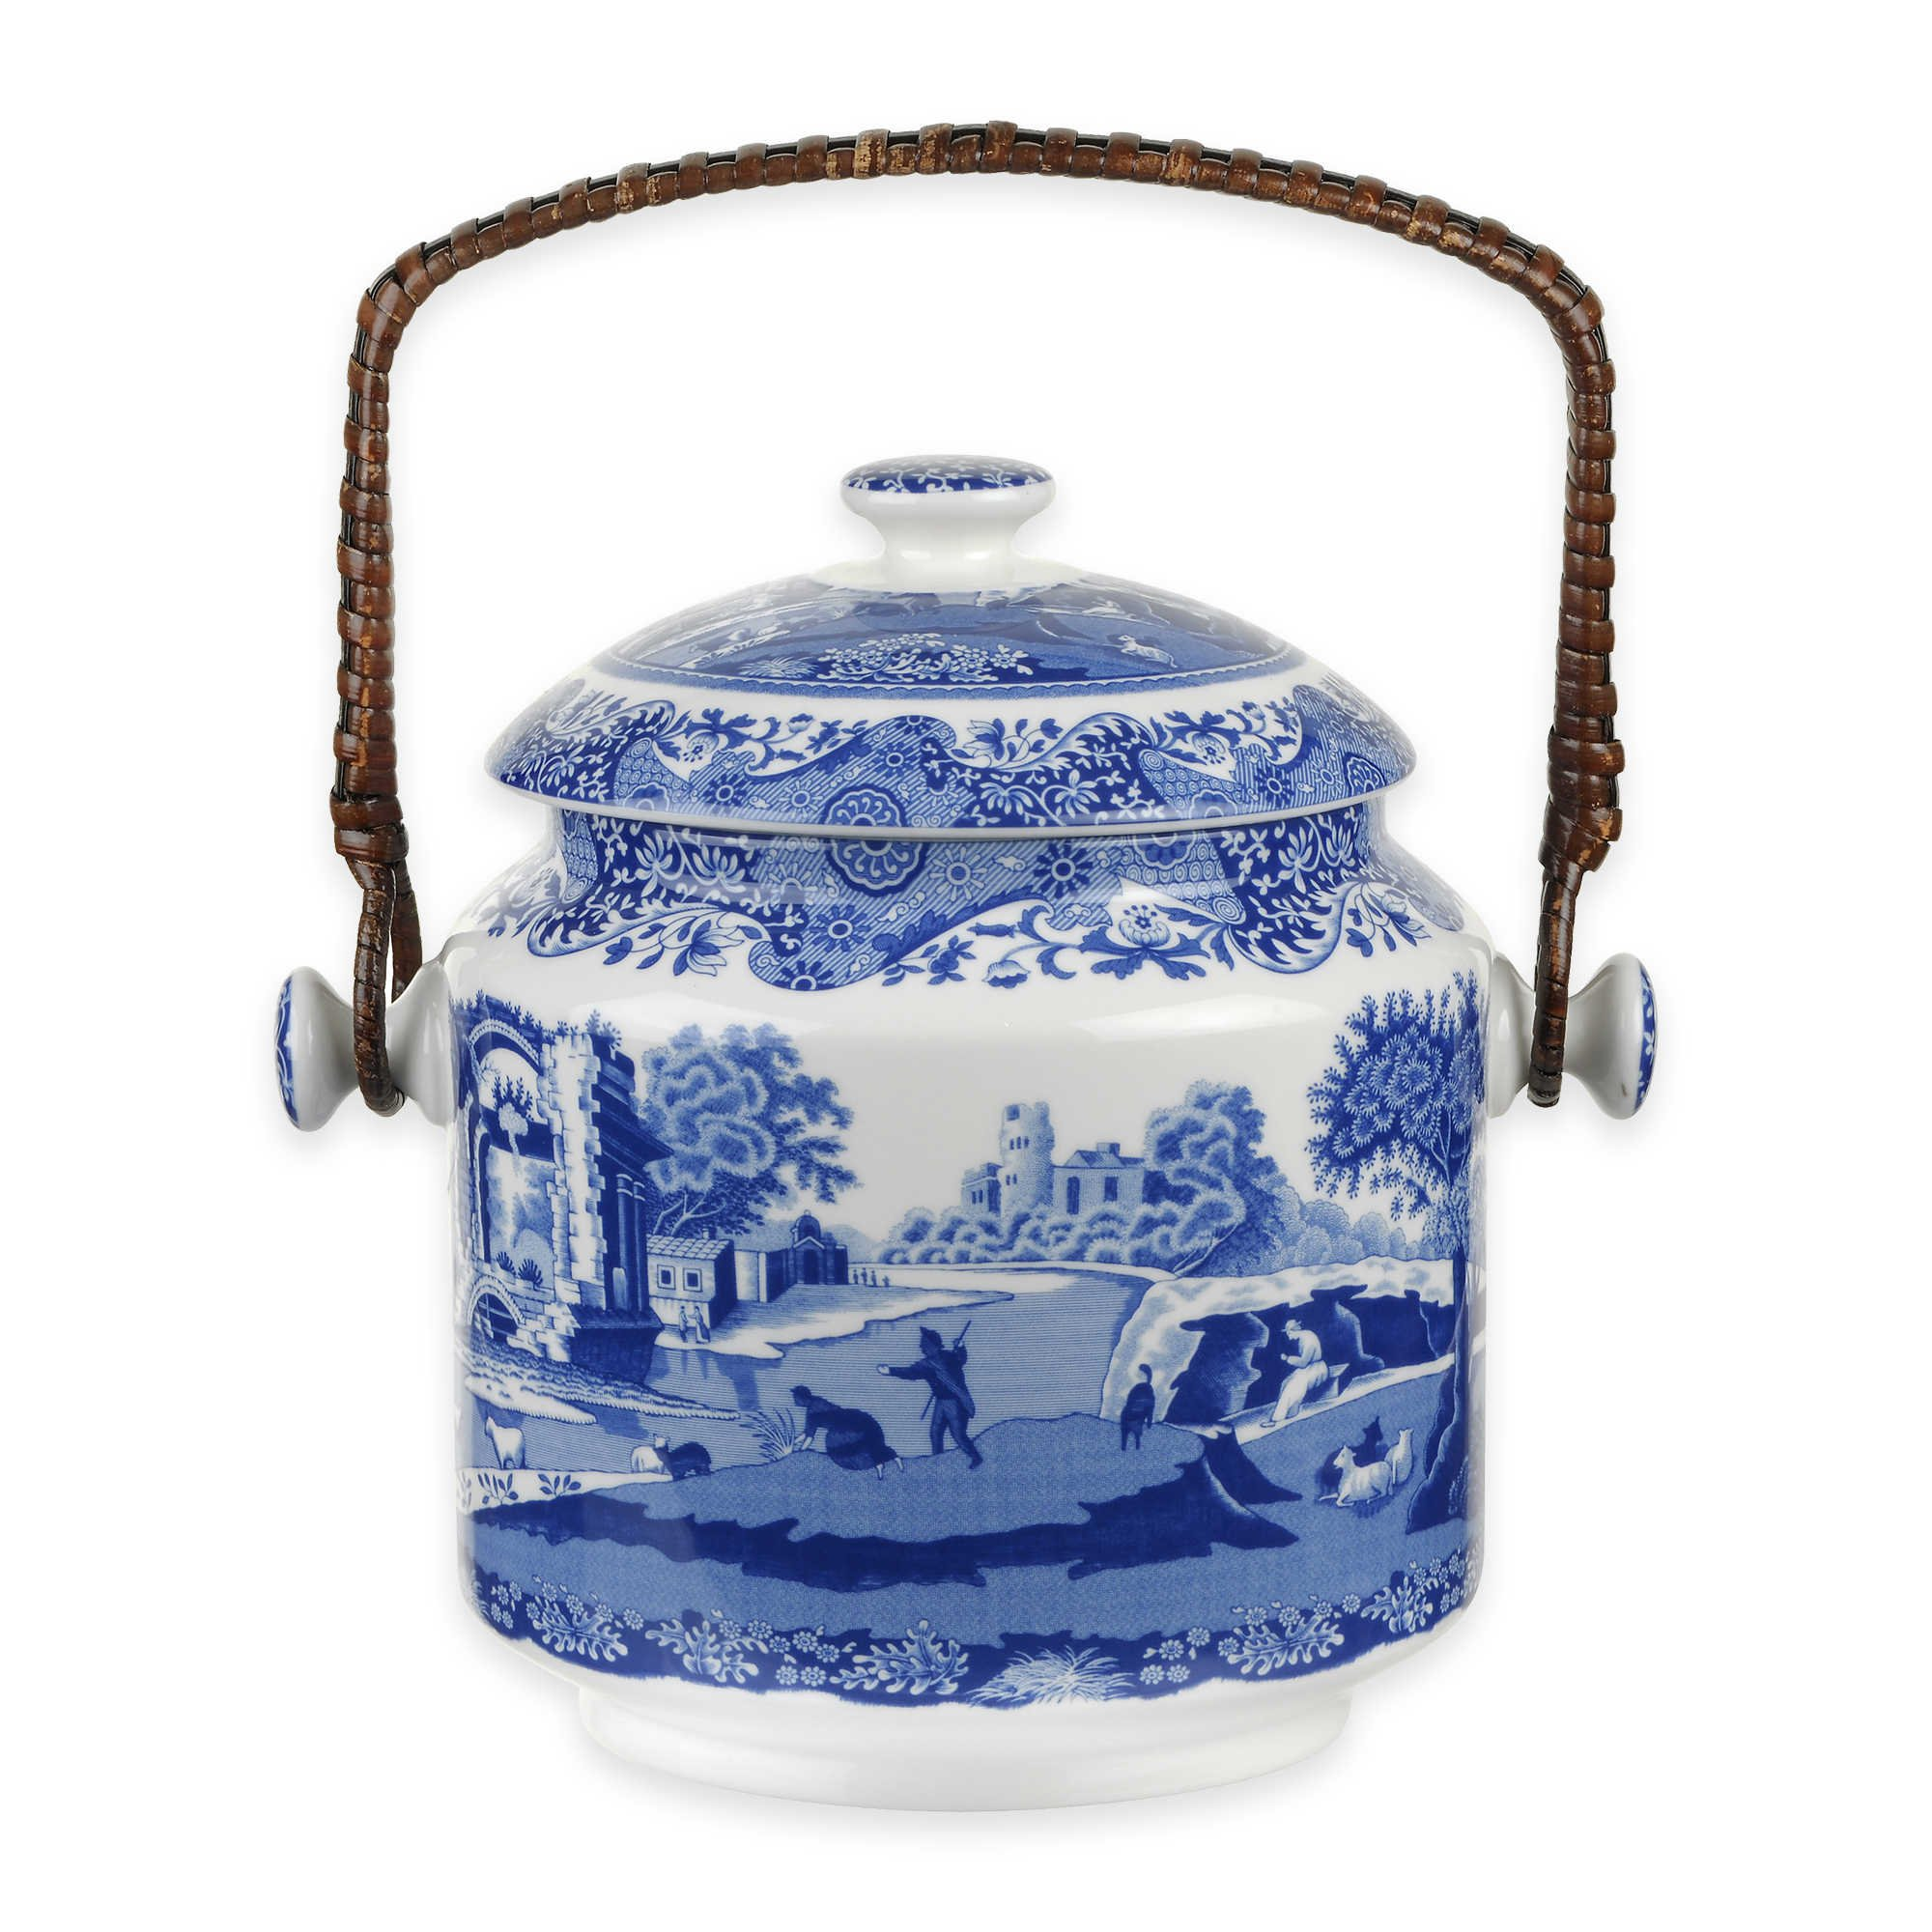 Spode Blue Italian 200th Anniversary Biscuit Barrel by Spode